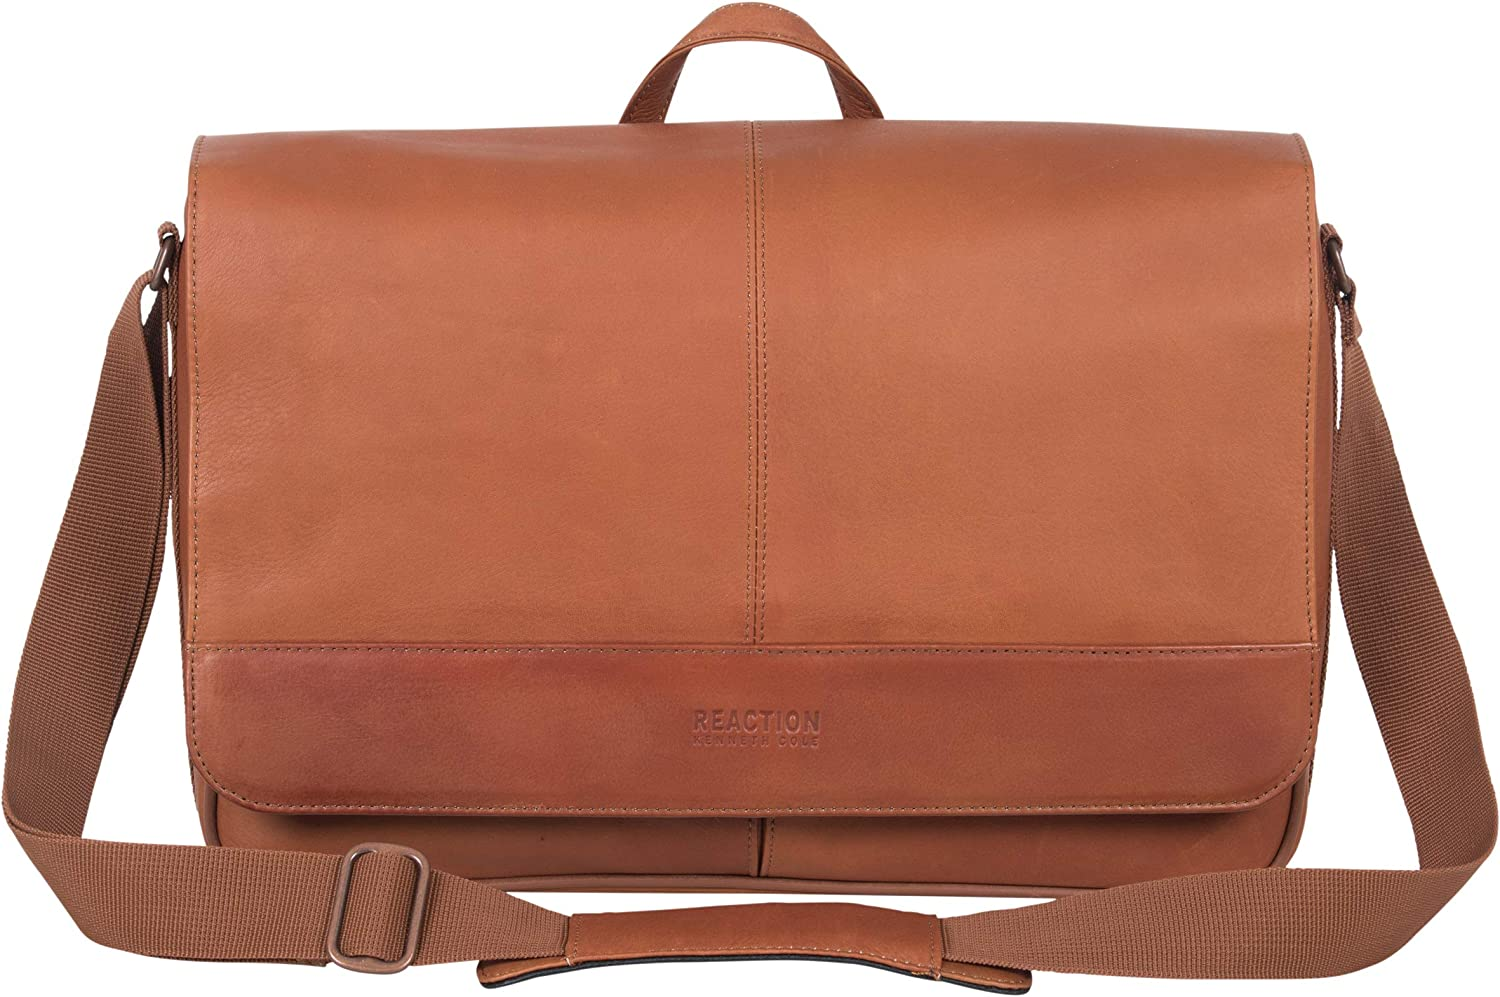 "Kenneth Cole Reaction 15.6"" Laptop Messenger Bag, Cognac"